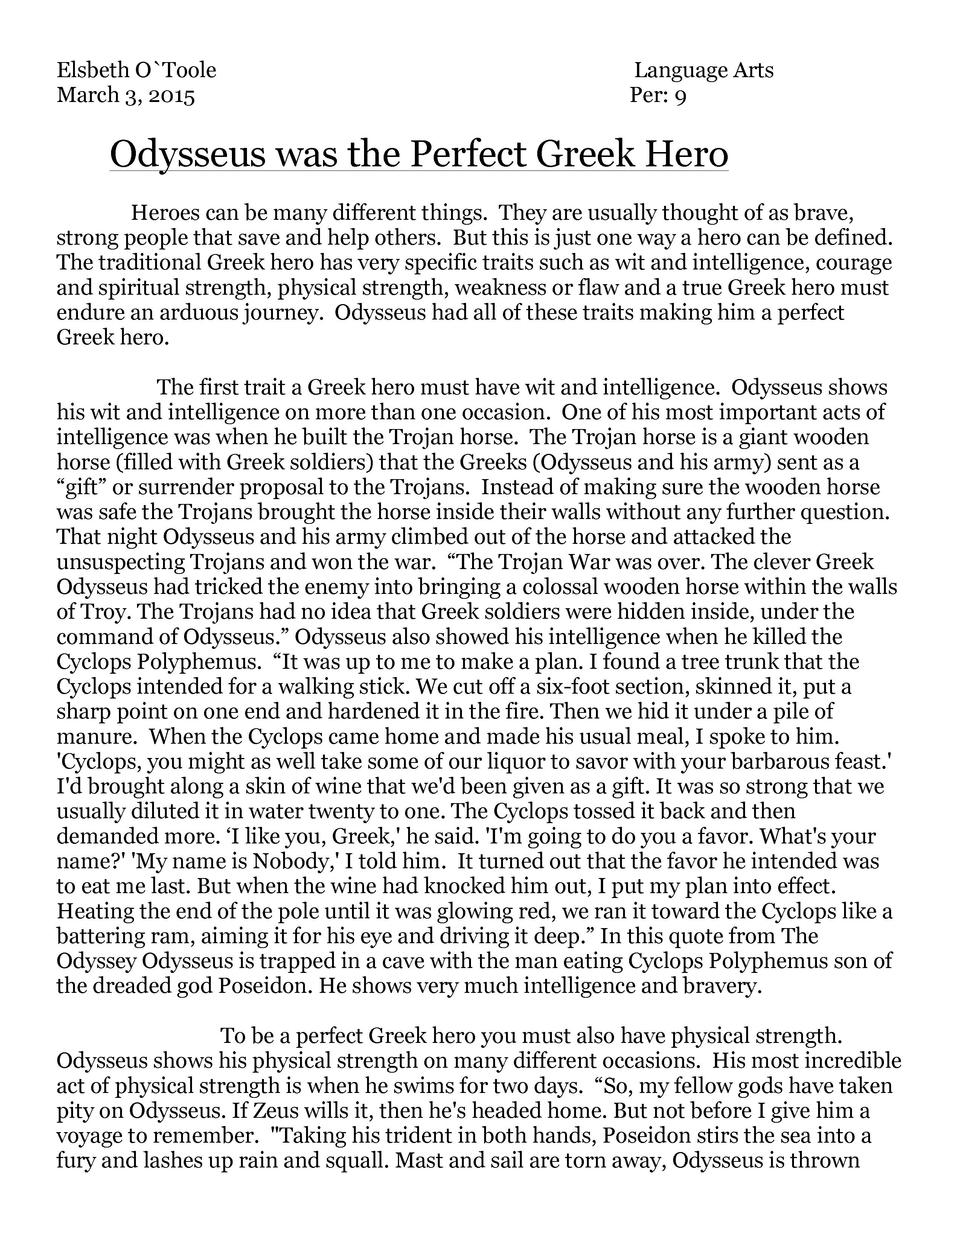 odysseuss heroic attributes essay Odysseus's heroic attributes essay no works cited length: 920 words (26  double-spaced pages) rating: yellow open document.